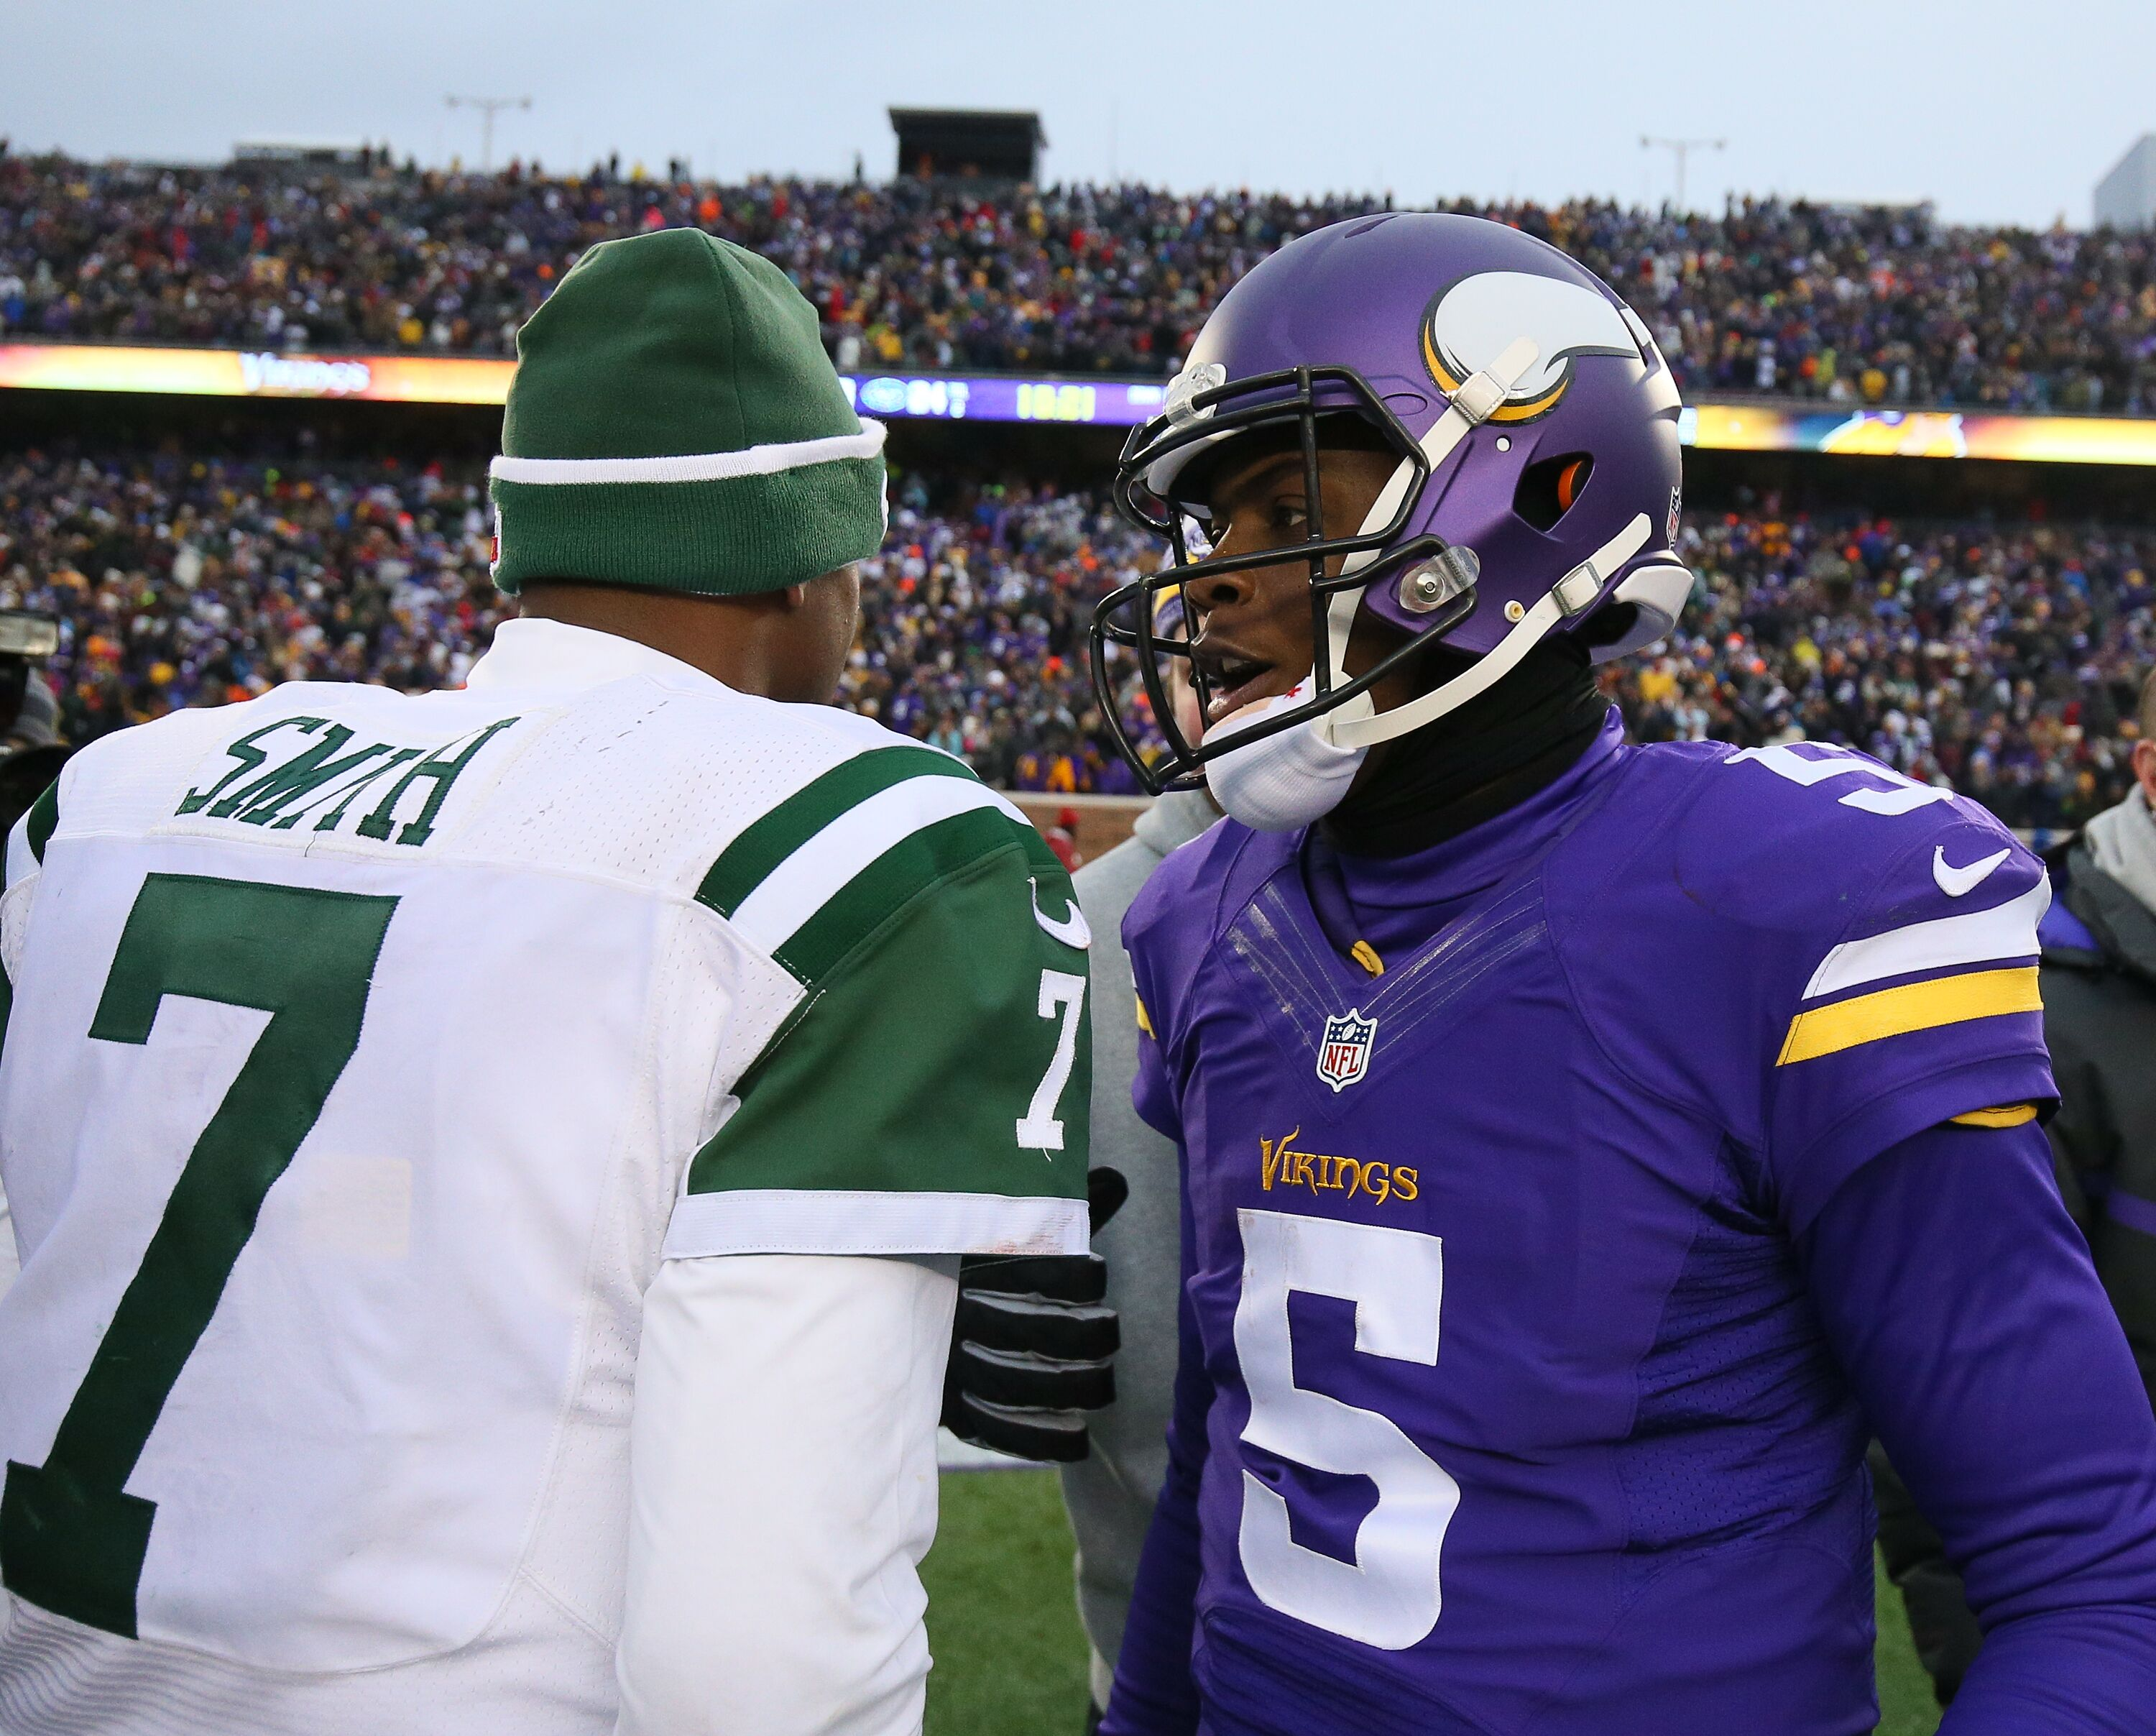 460114282-new-york-jets-v-minnesota-vikings.jpg